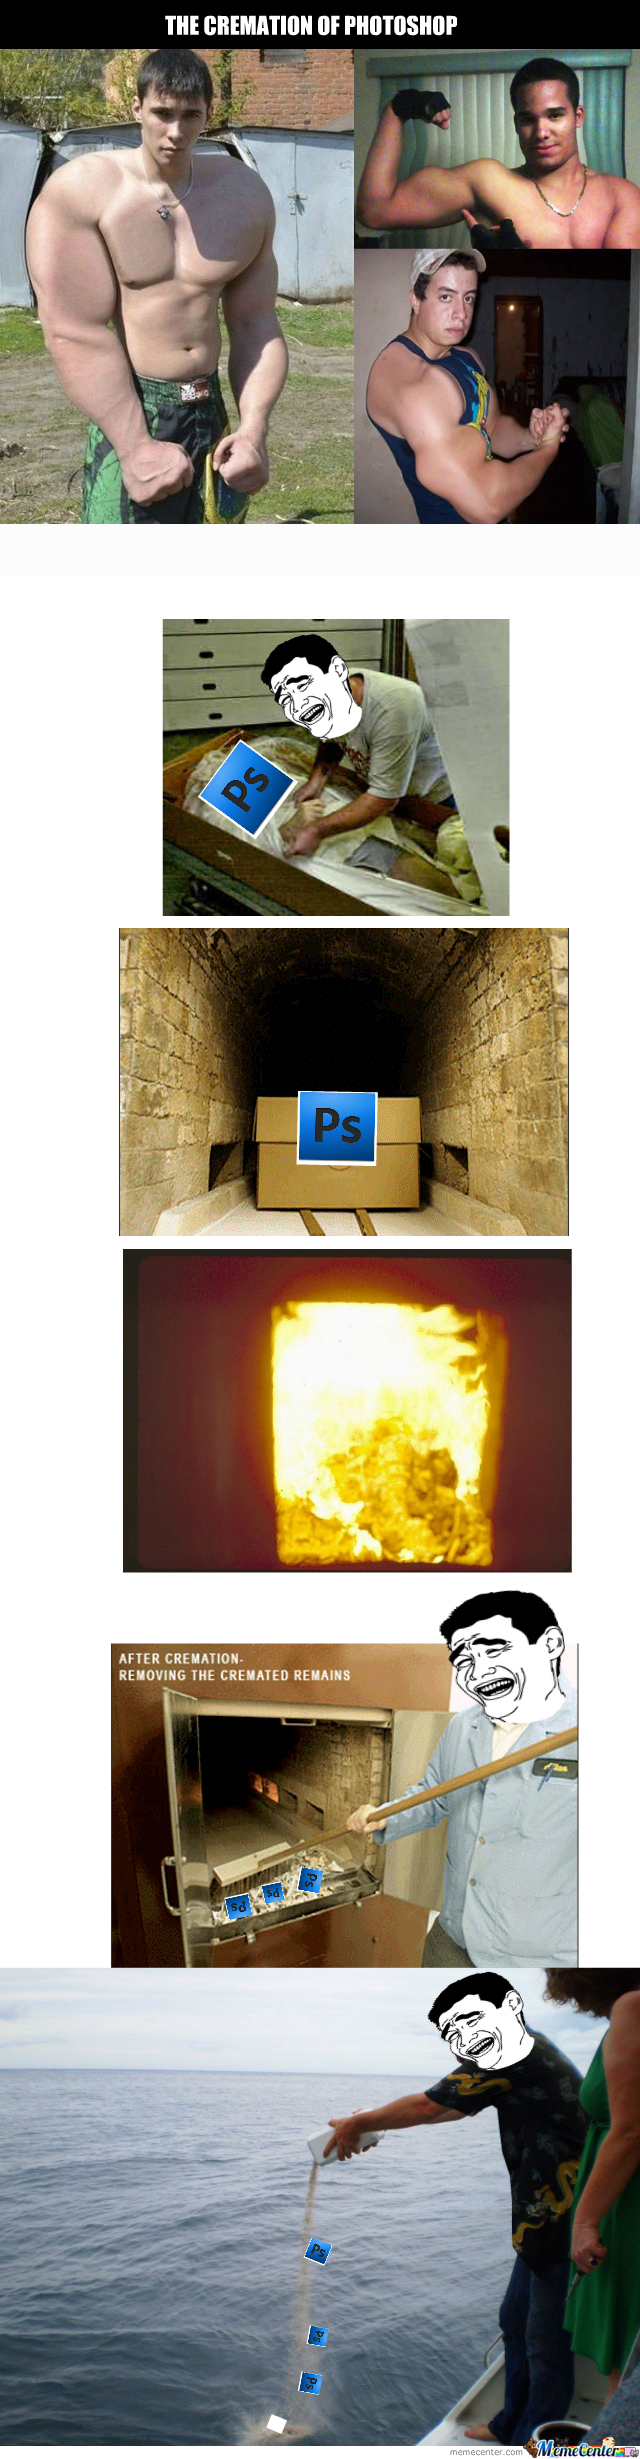 The Cremation Of Photoshop